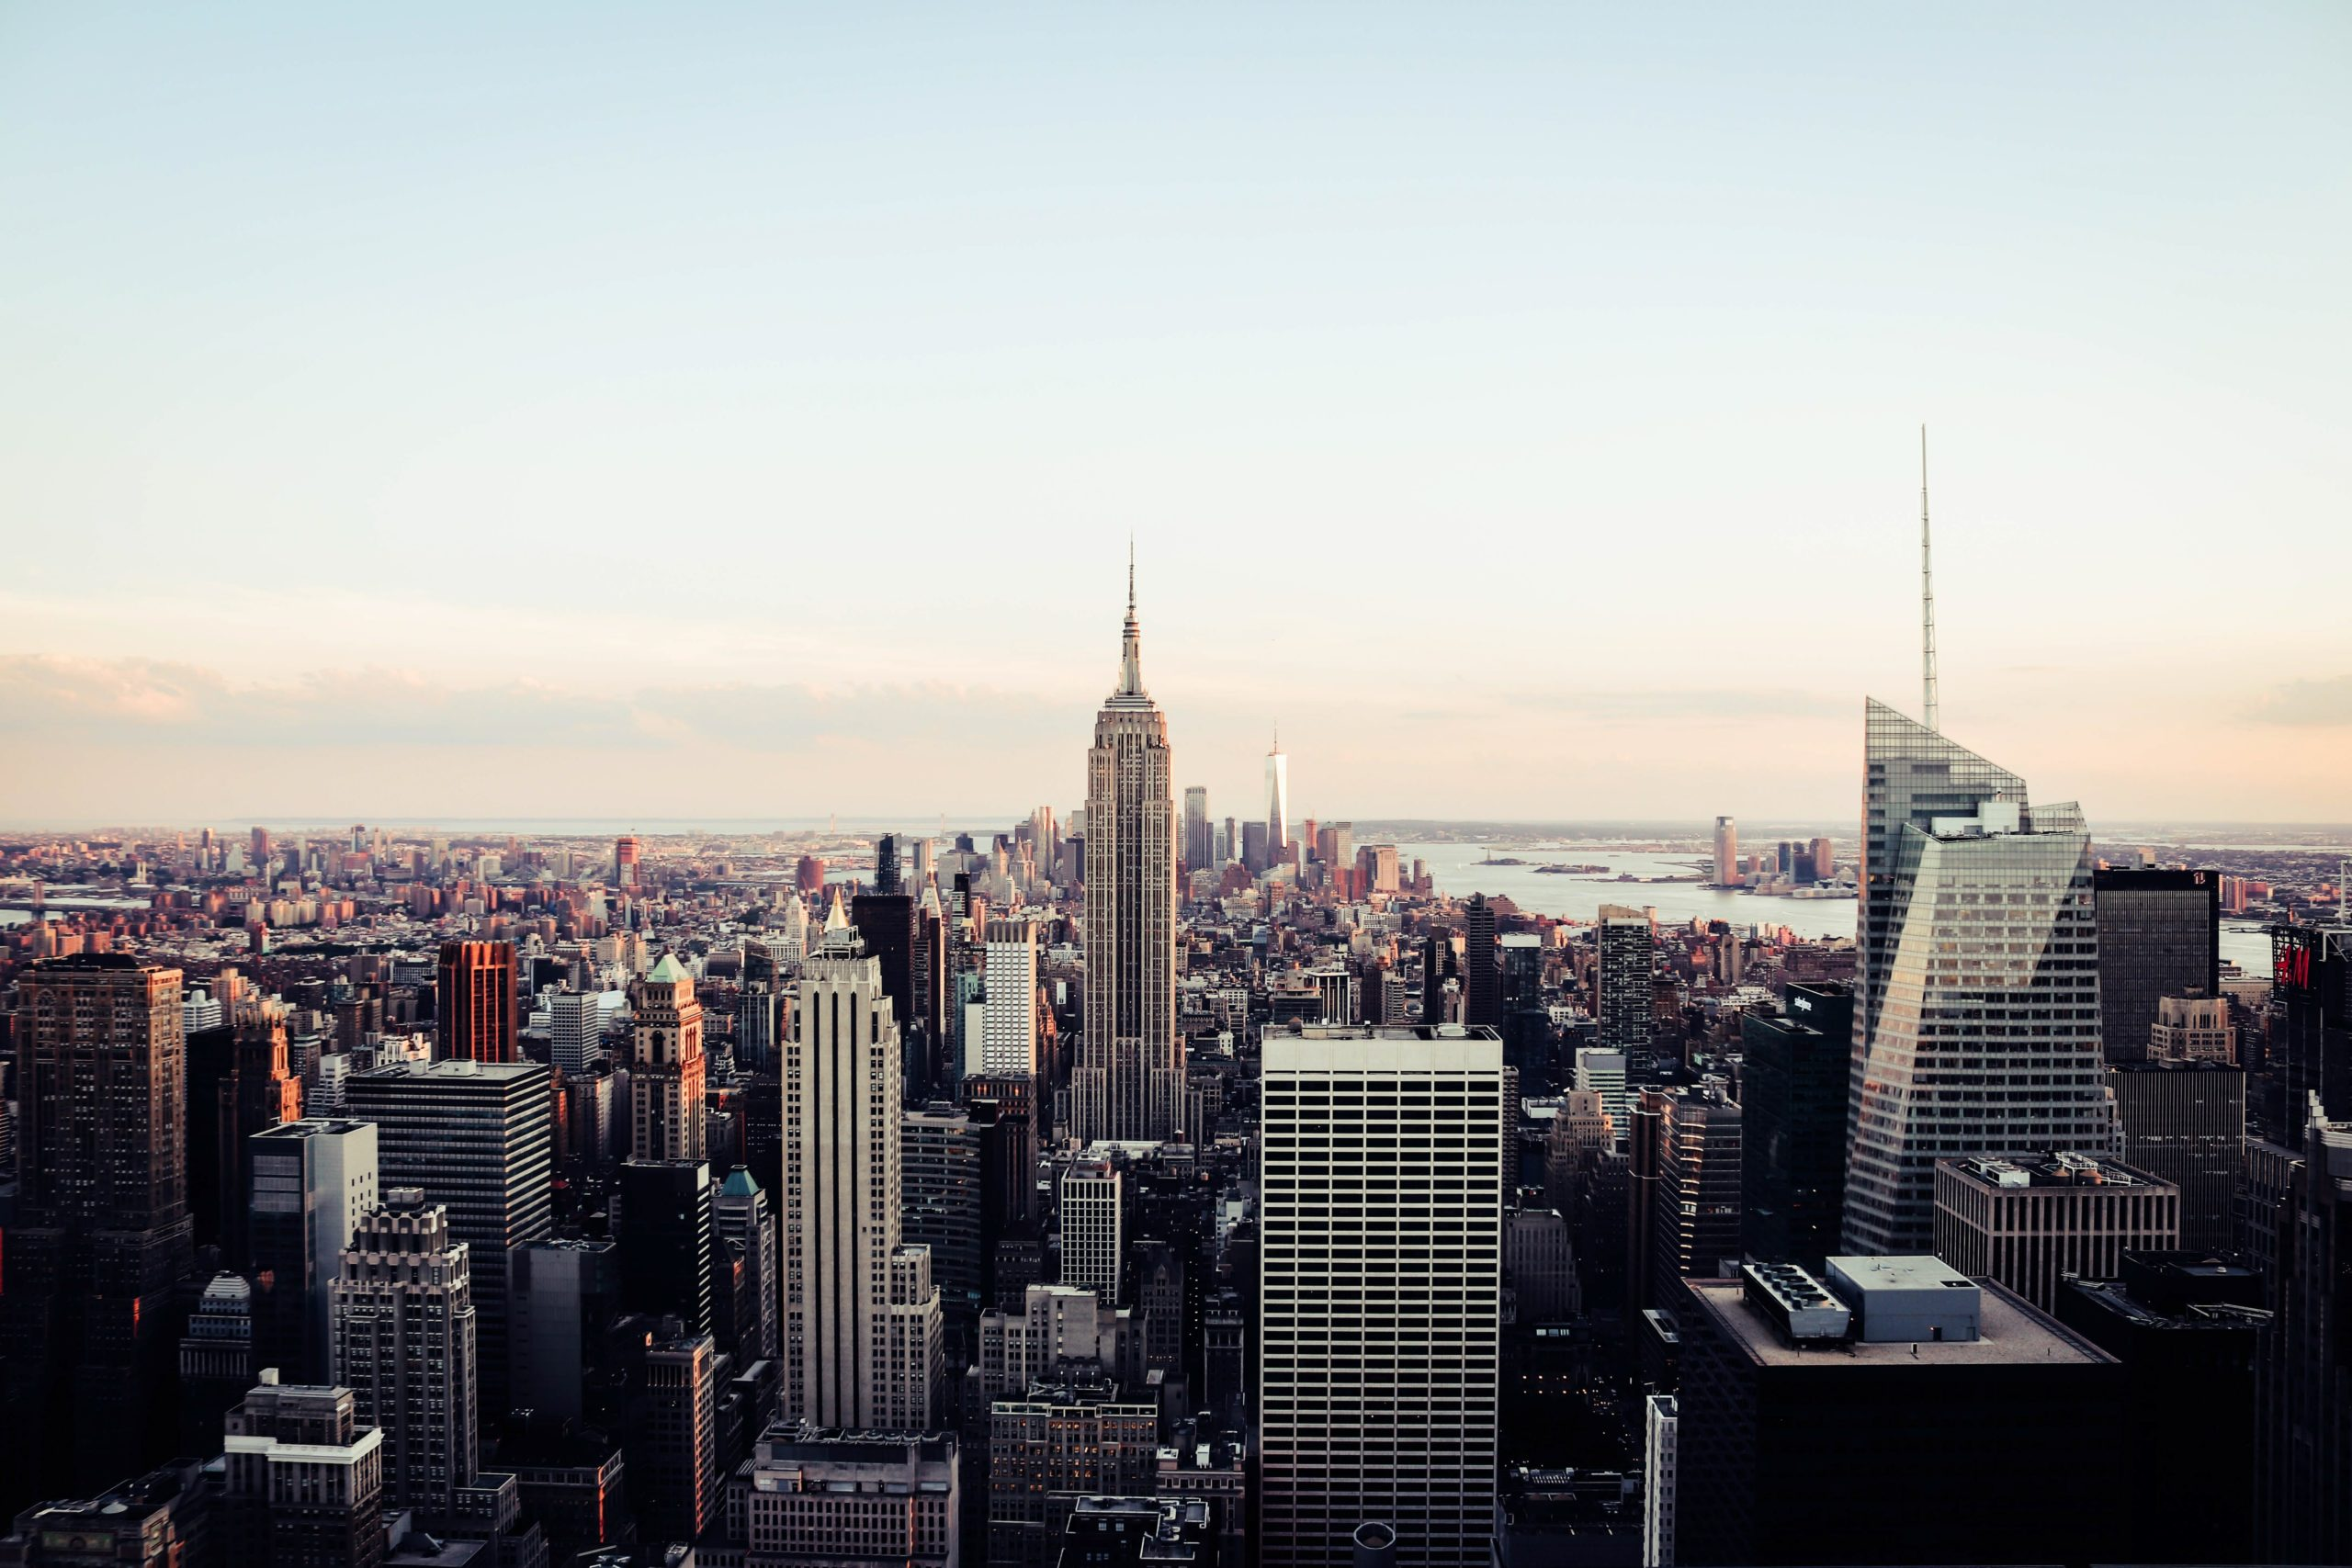 Instagrammable Places in New York City (Guide)